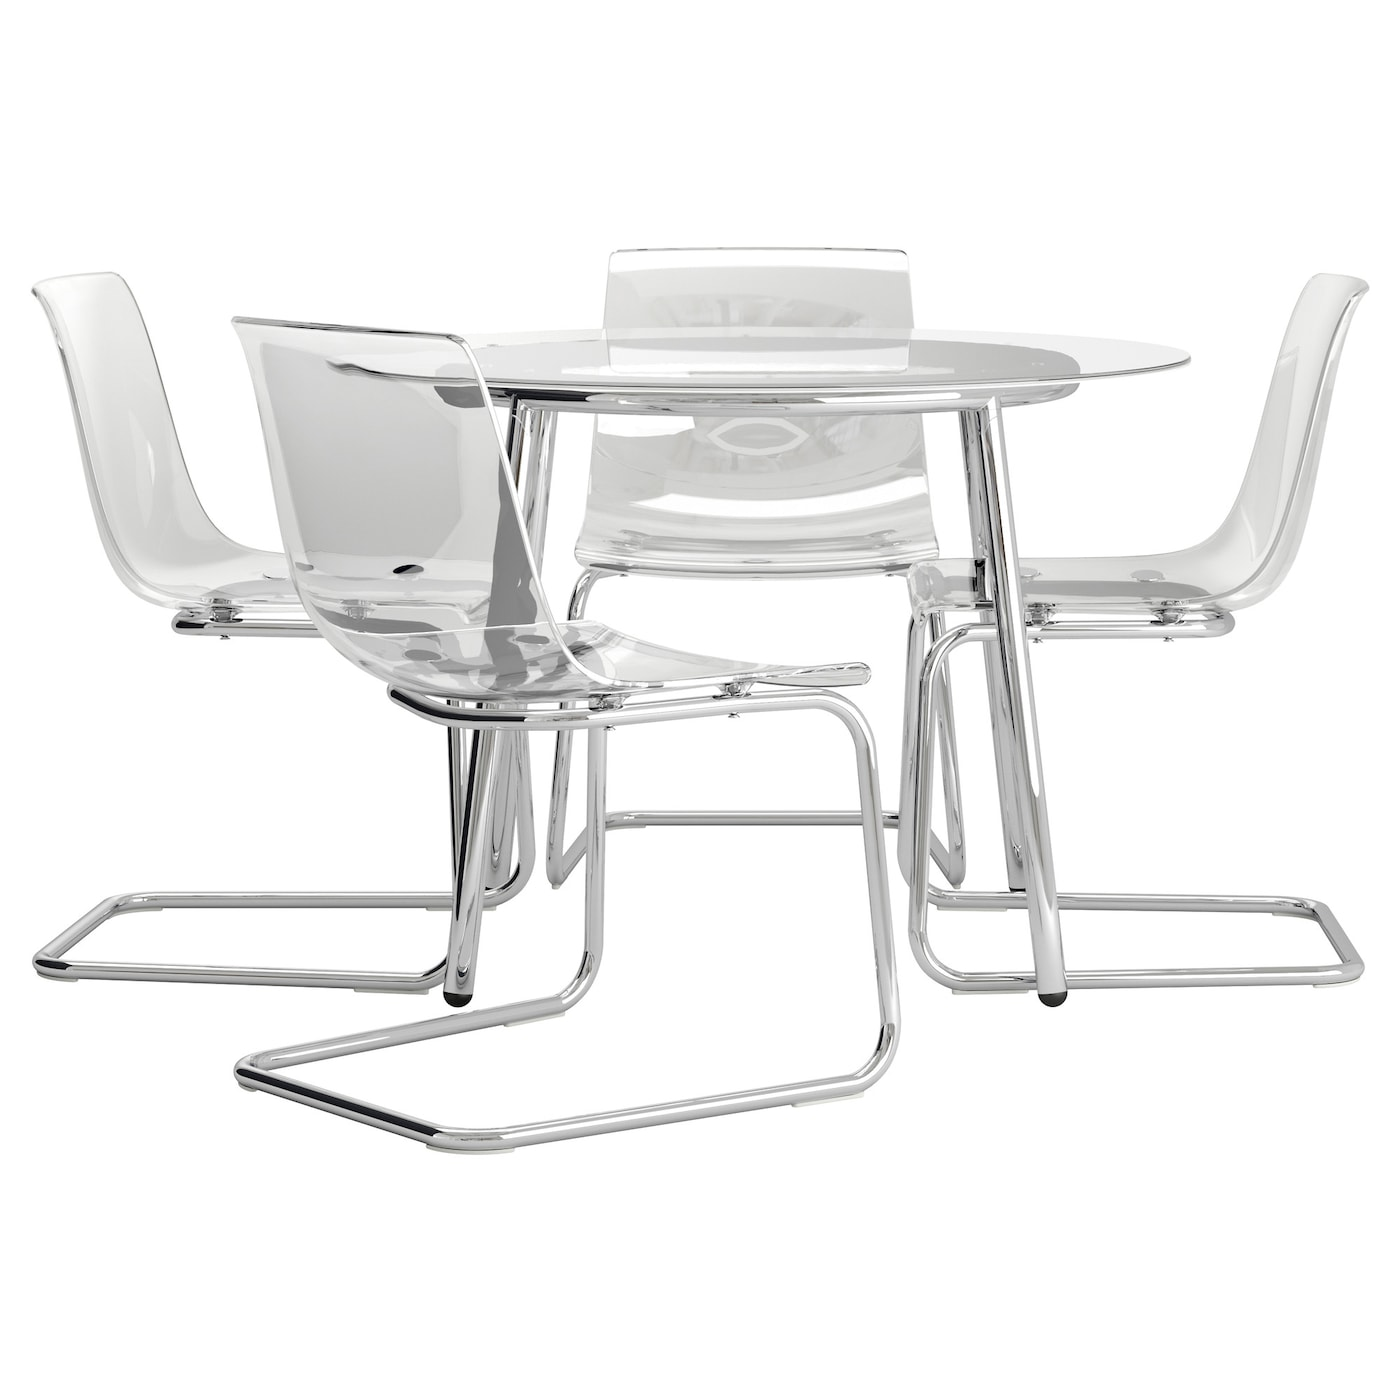 Salmi tobias table and 4 chairs glass transparent 105 cm for Table 4 personnes ikea